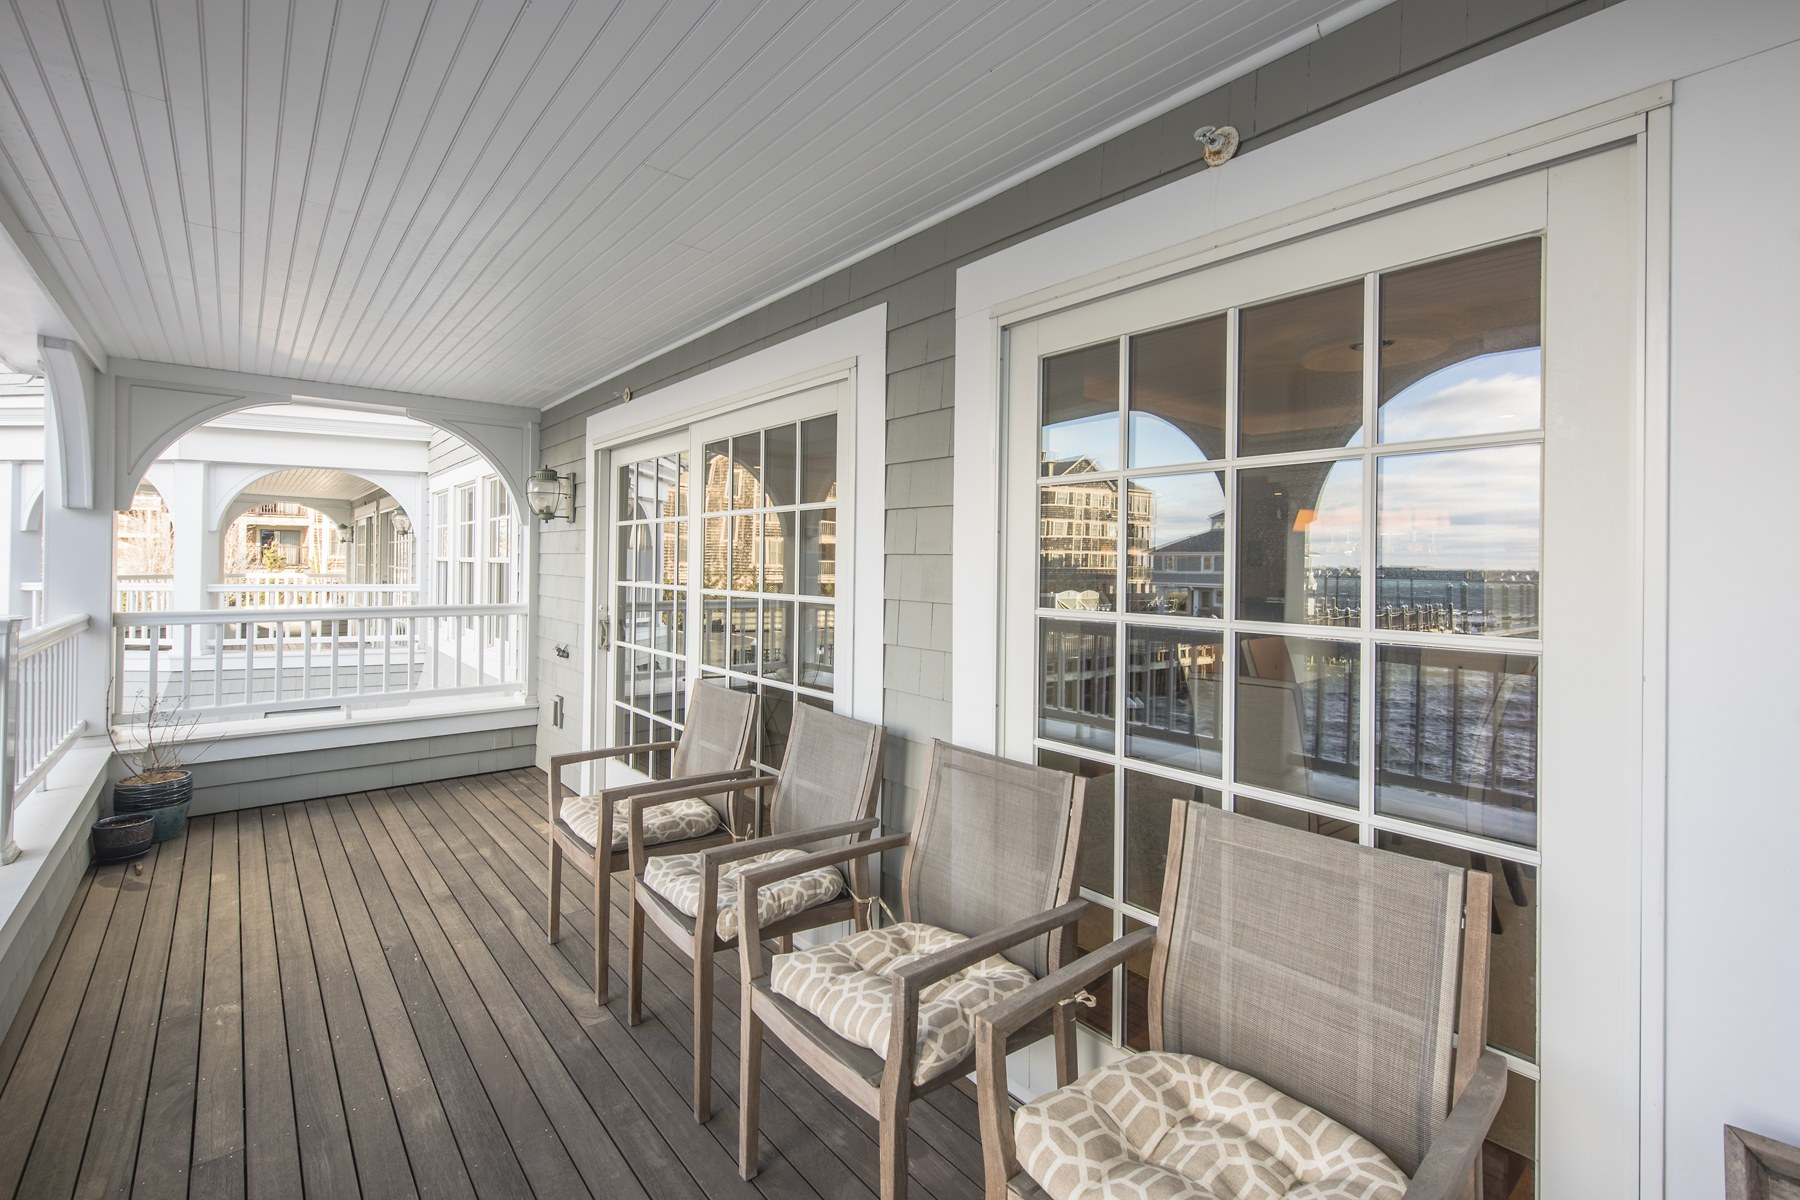 Additional photo for property listing at 24 Brown And Howard Wharf, #301, Newport, RI 24 Brown And Howard Wharf 301 Newport, Rhode Island 02840 United States